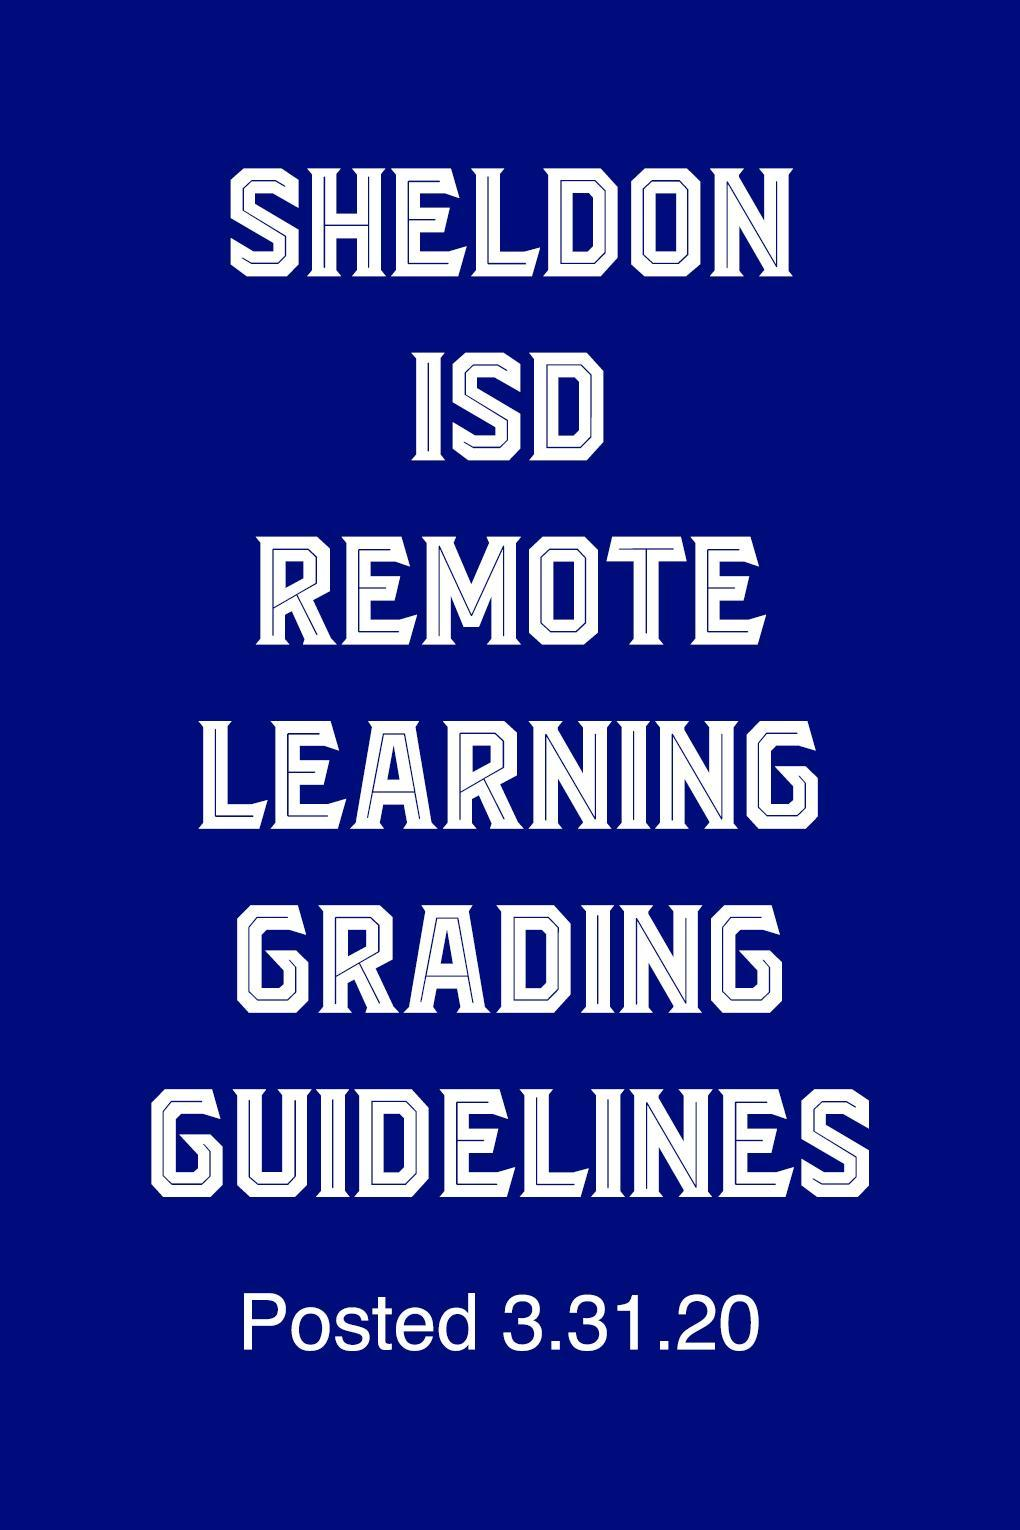 sheldon_isd_grading_guidelines_box_033120